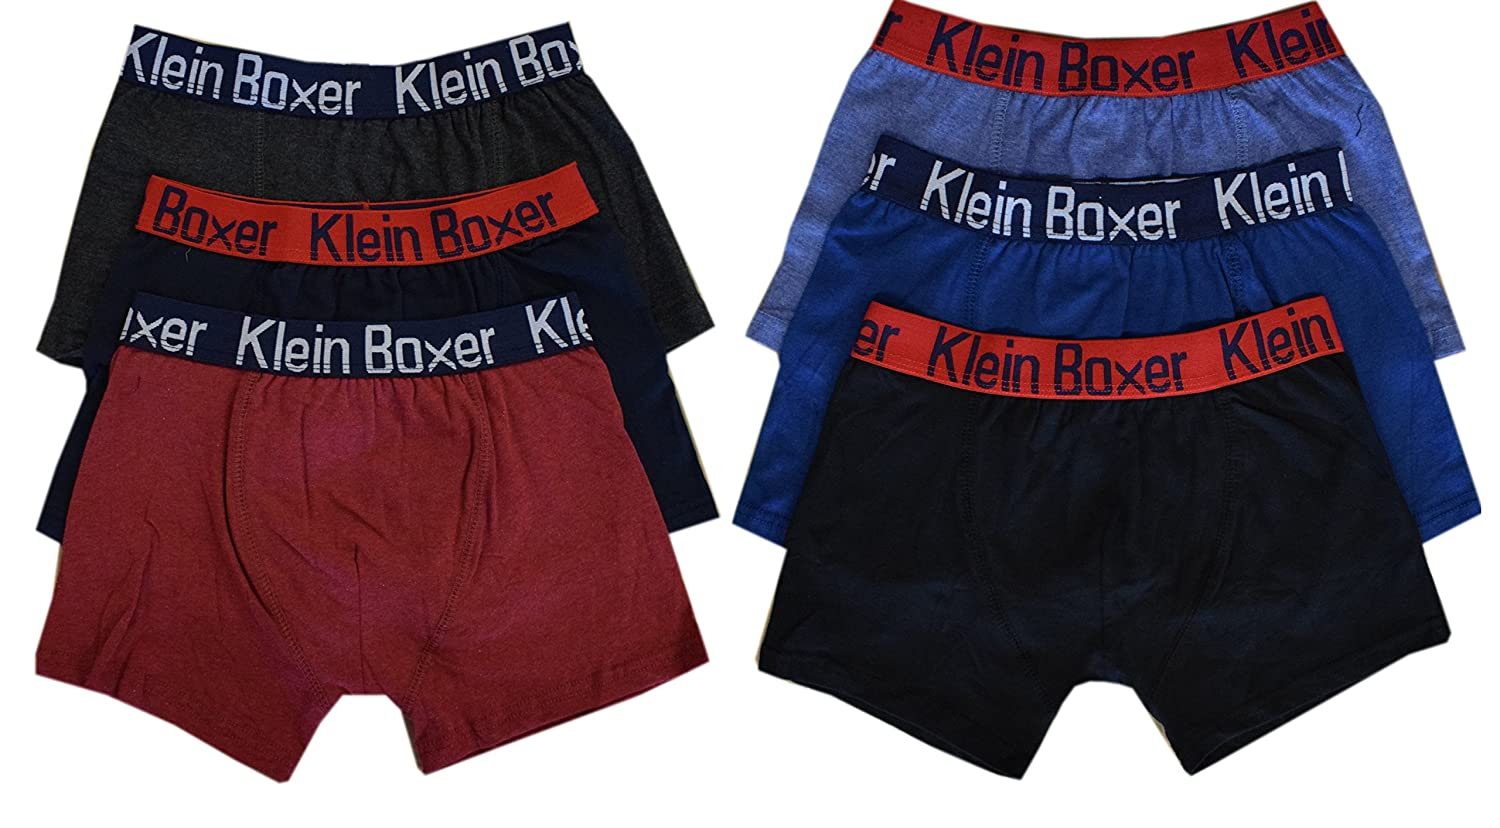 6 Or 12 Pairs Boys Boxer Shorts Cotton Rich Designer Trunk Boxers Underwear 5-13